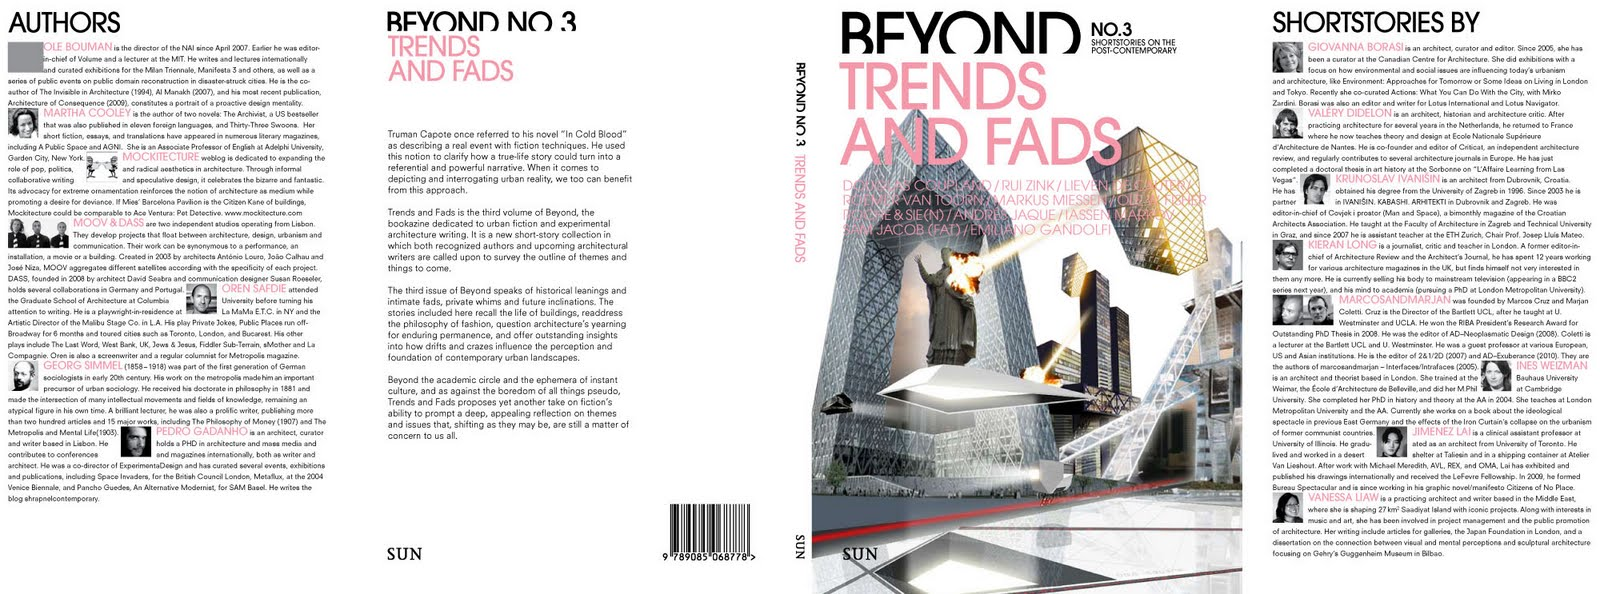 essay on fads and trends Free fashion trends papers, essays, and research papers.